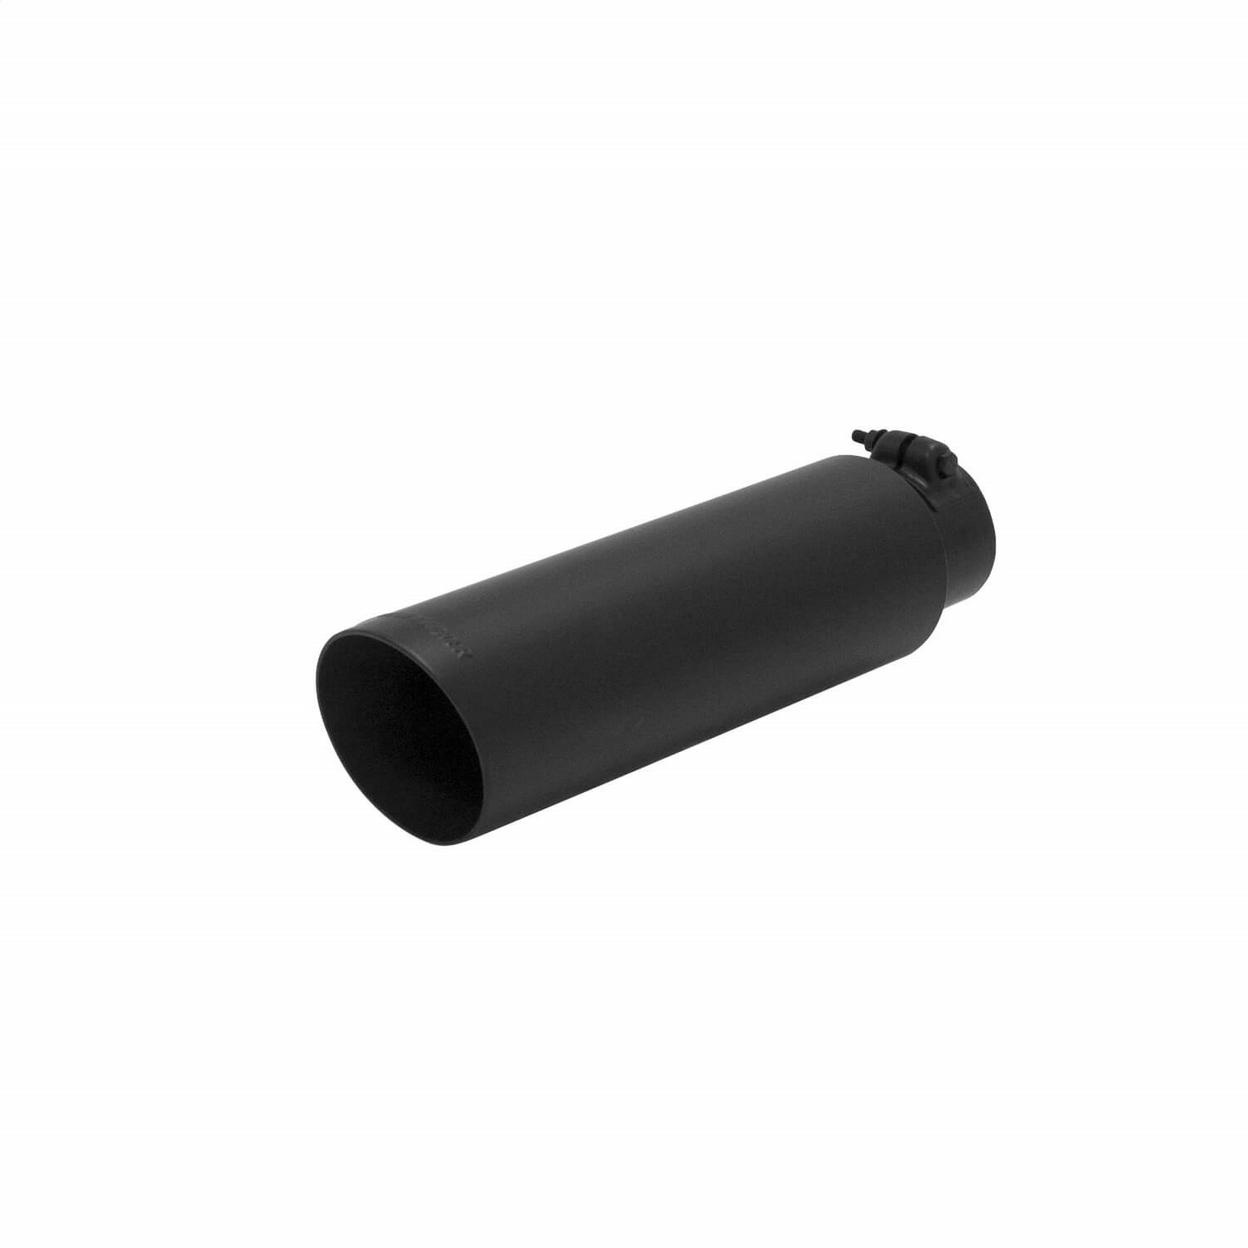 Exhaust Tip - 3.5 in. Black Angle Cut Fits 2.5 in. Tubing- Clamp On